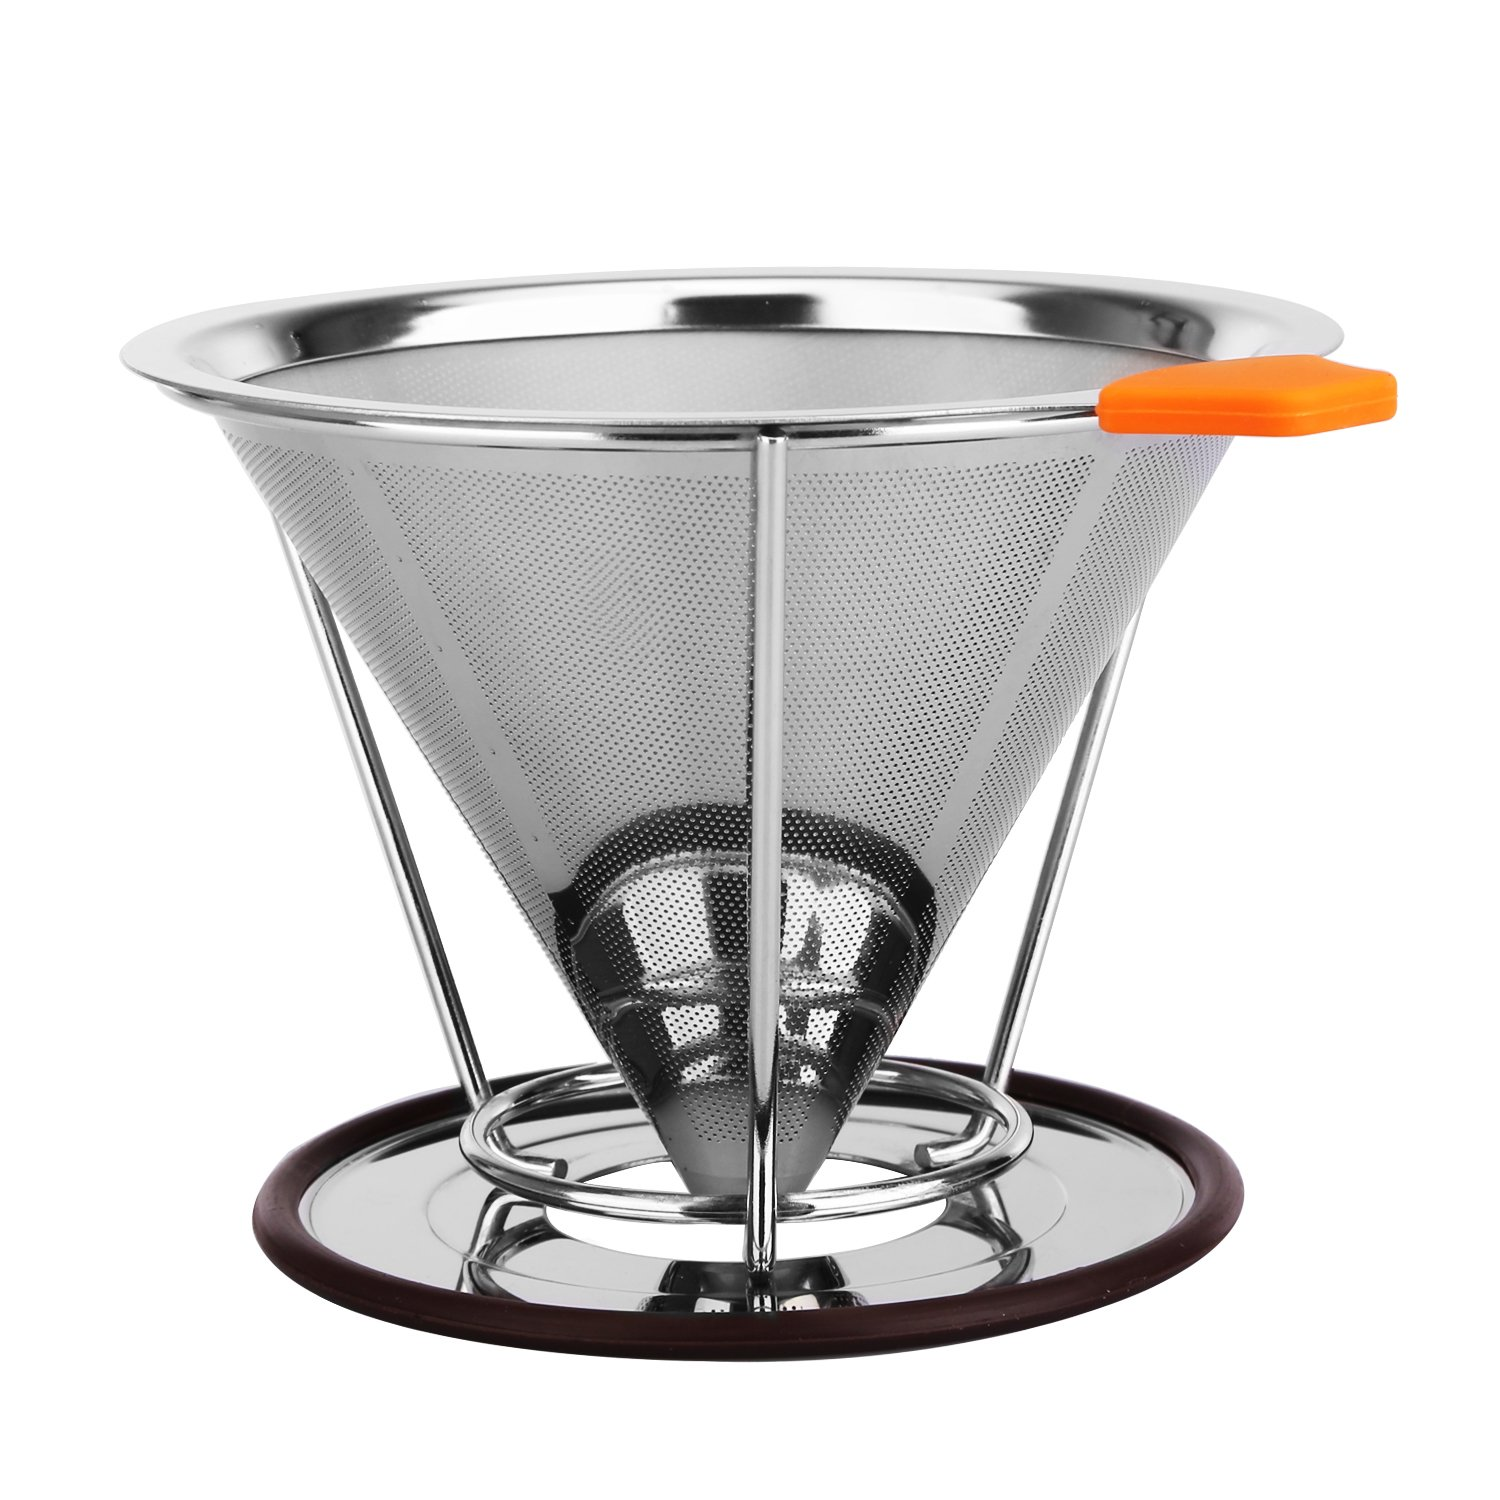 Kumeida Pour Over Coffee Maker, Reusable Stainless Steel Coffee Filter, Coffee Dripper Paperless, Coffee Brewer with Stand for 4 Cups